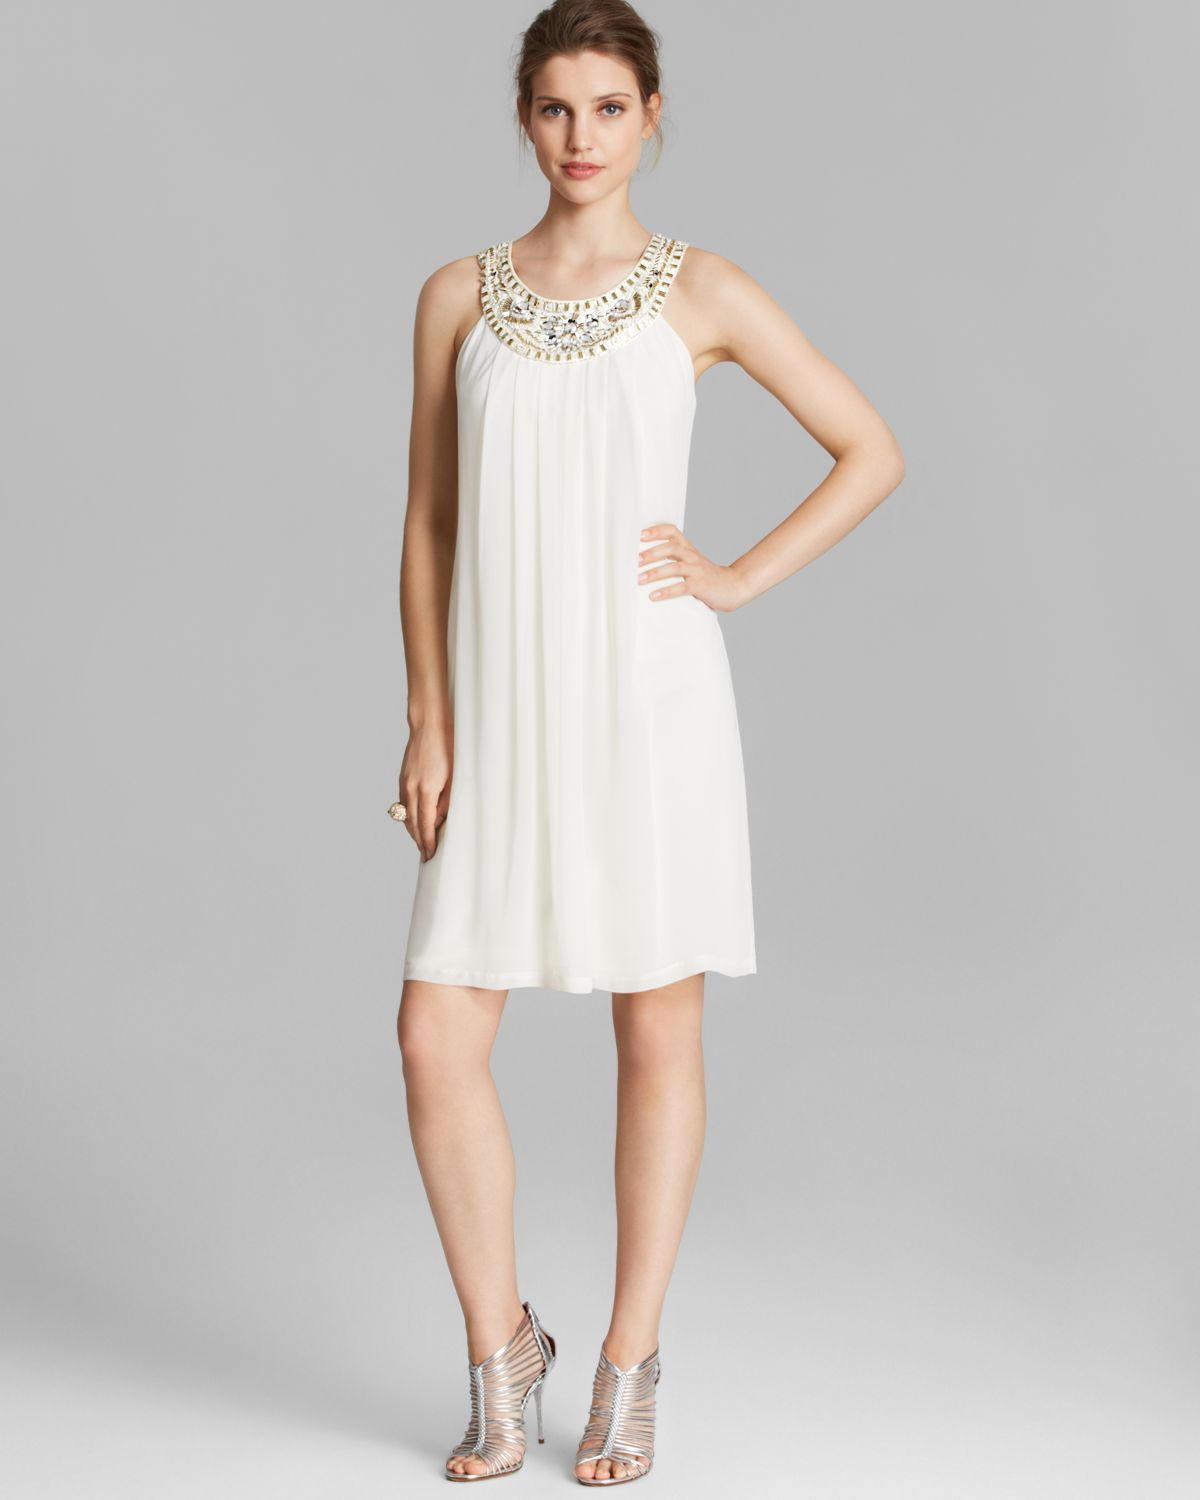 Sleeveless A-Line Shift In White (Ivory